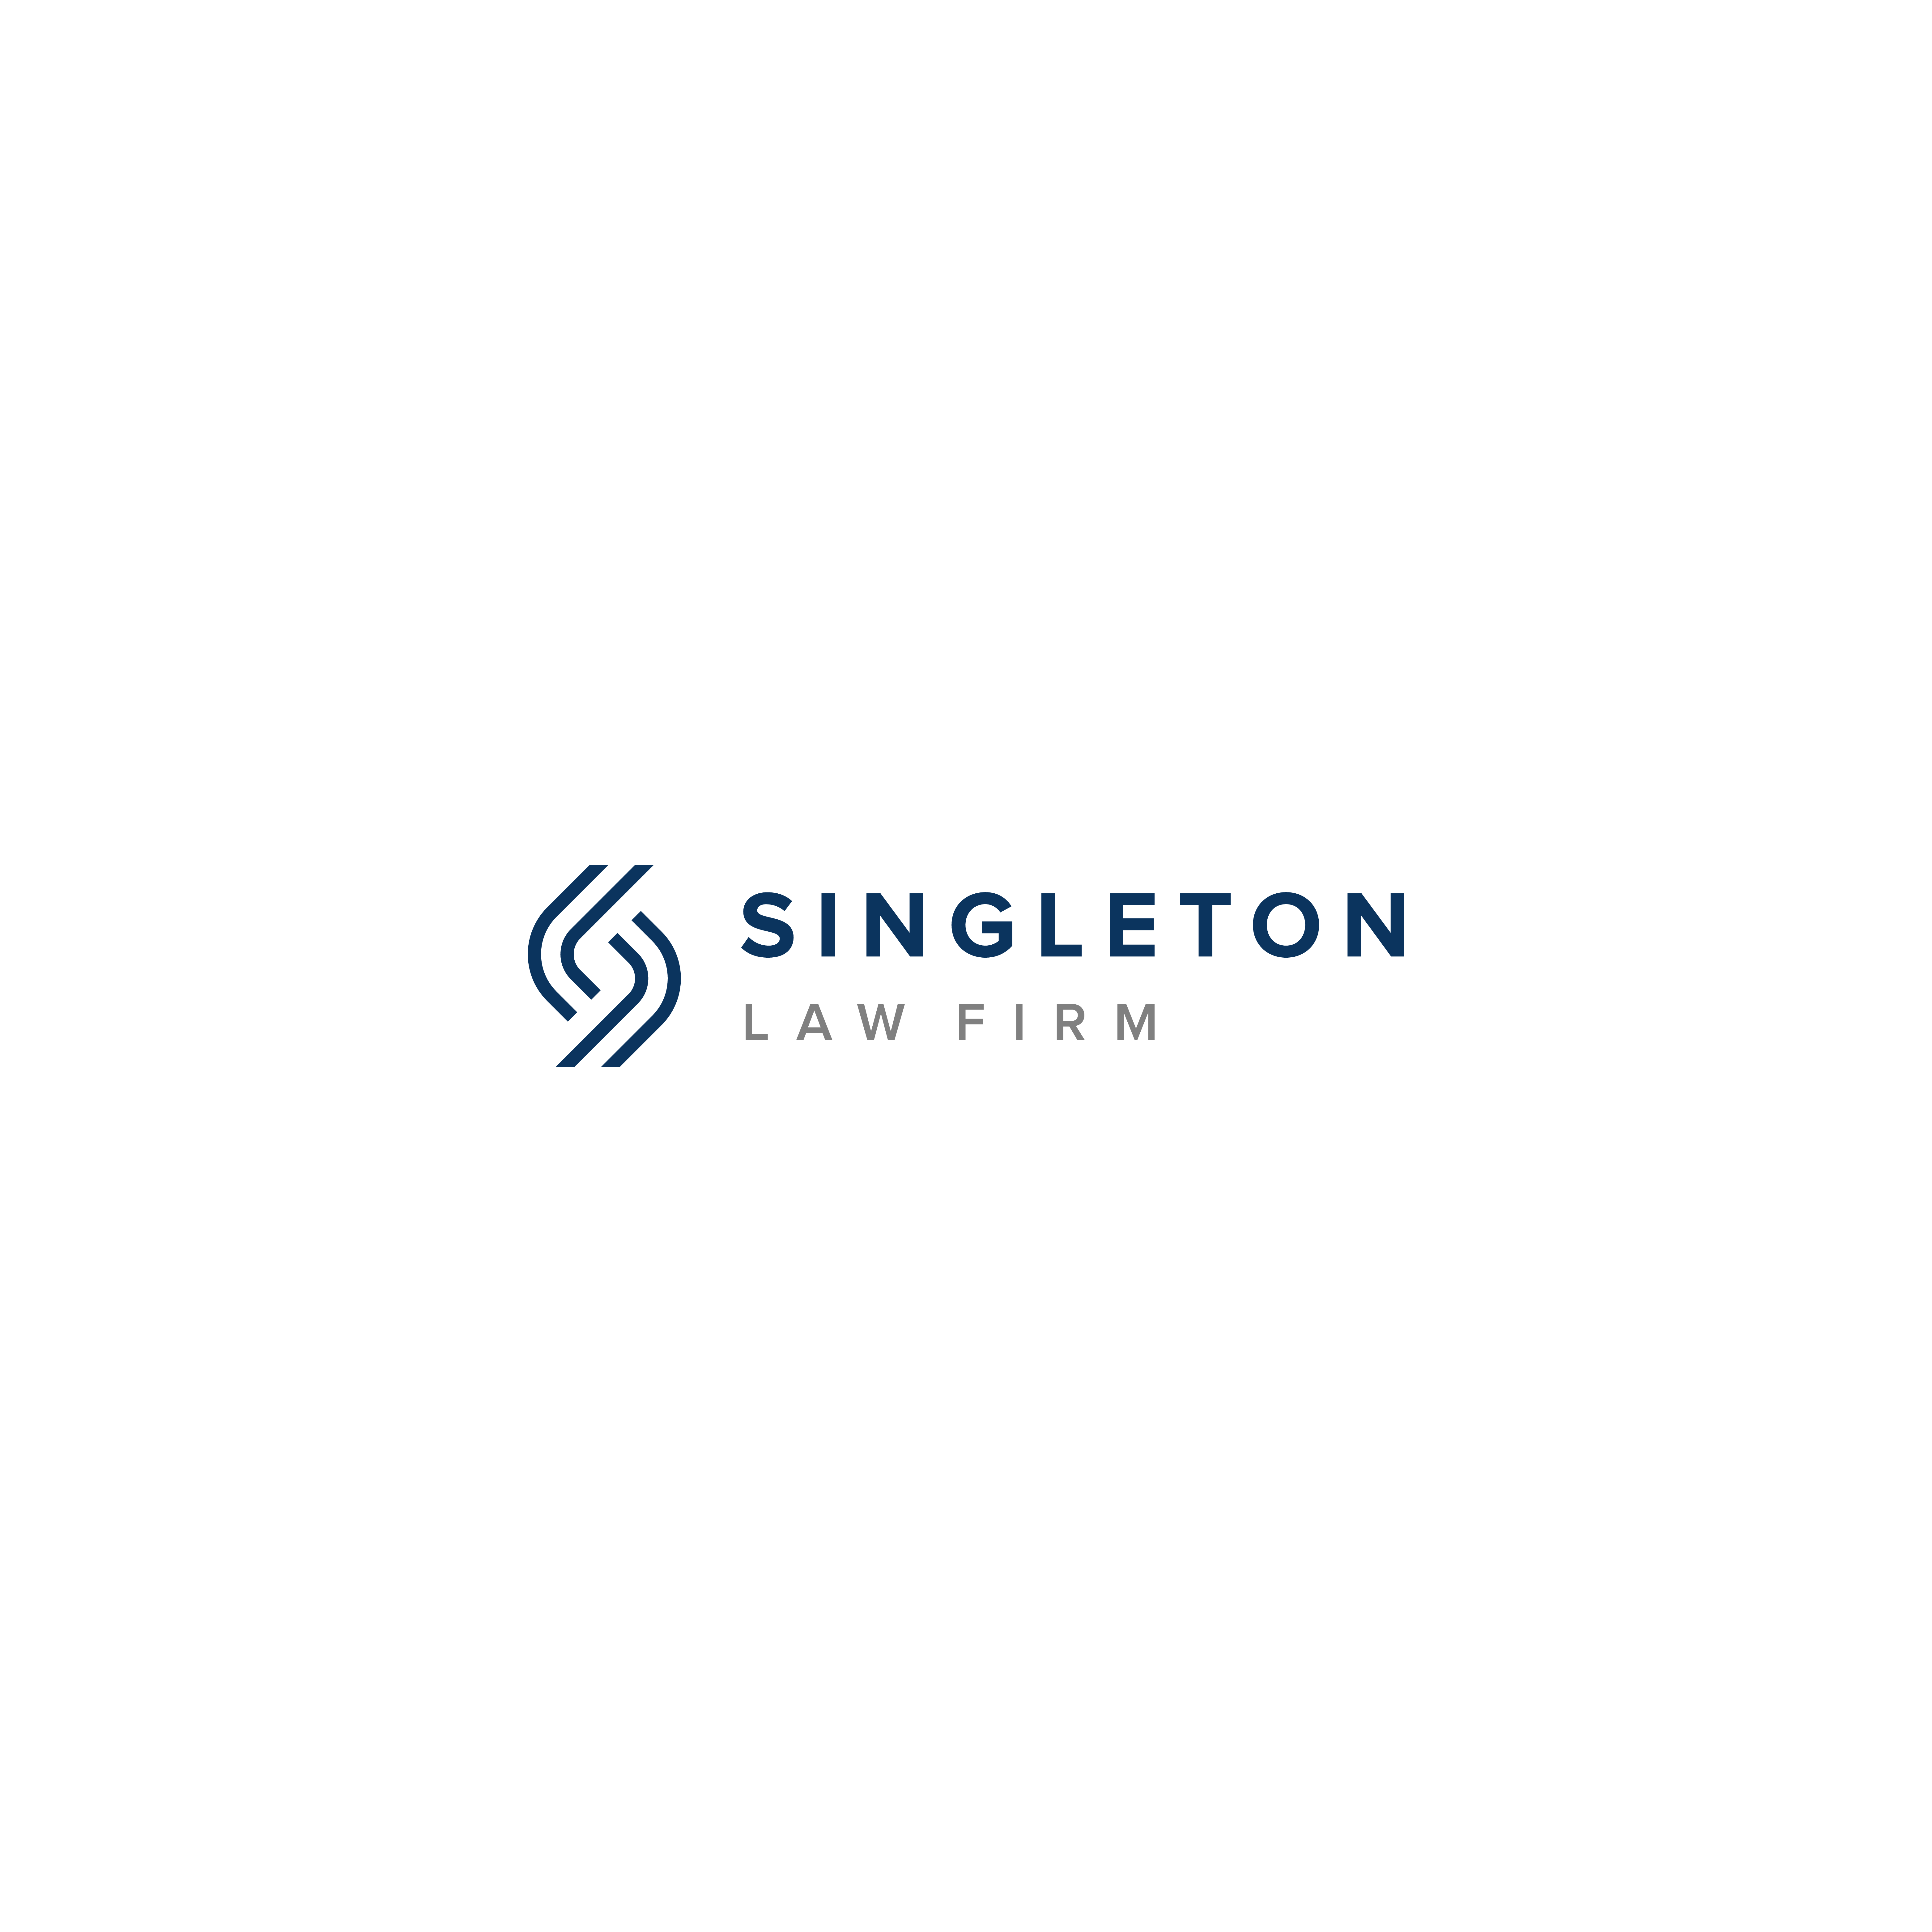 Singleton Law Firm Is Working Remotely To Ensure Client Satisfaction